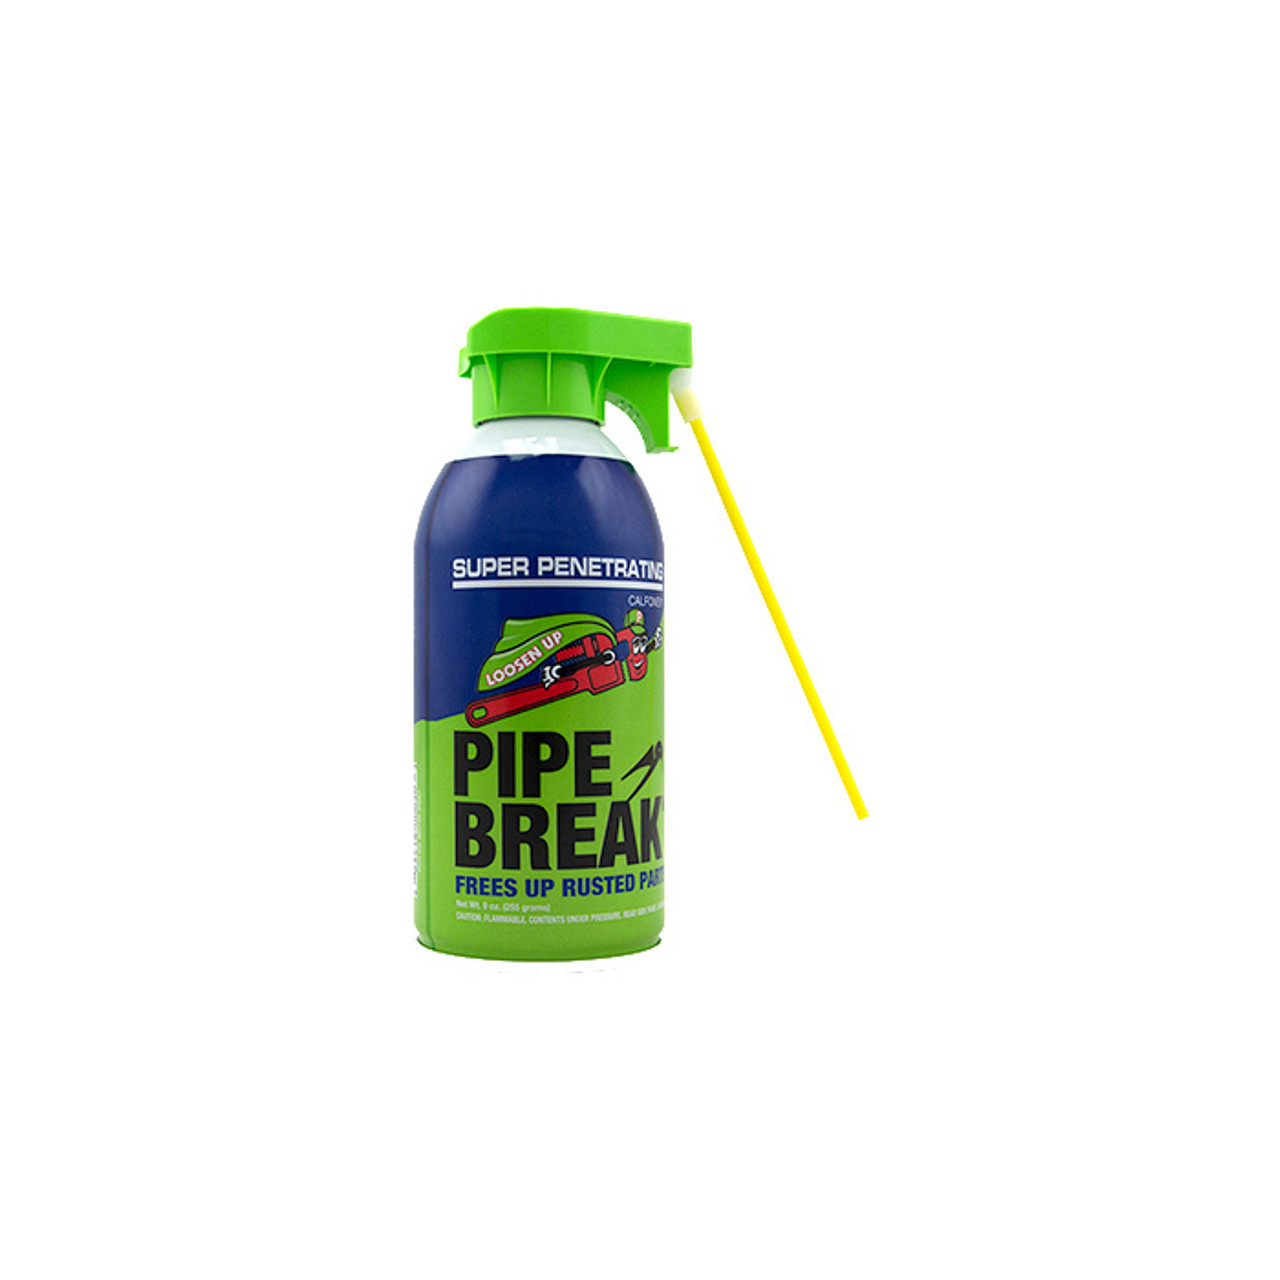 Pipe Break - 9 oz. can with attached Straw (Single Can)